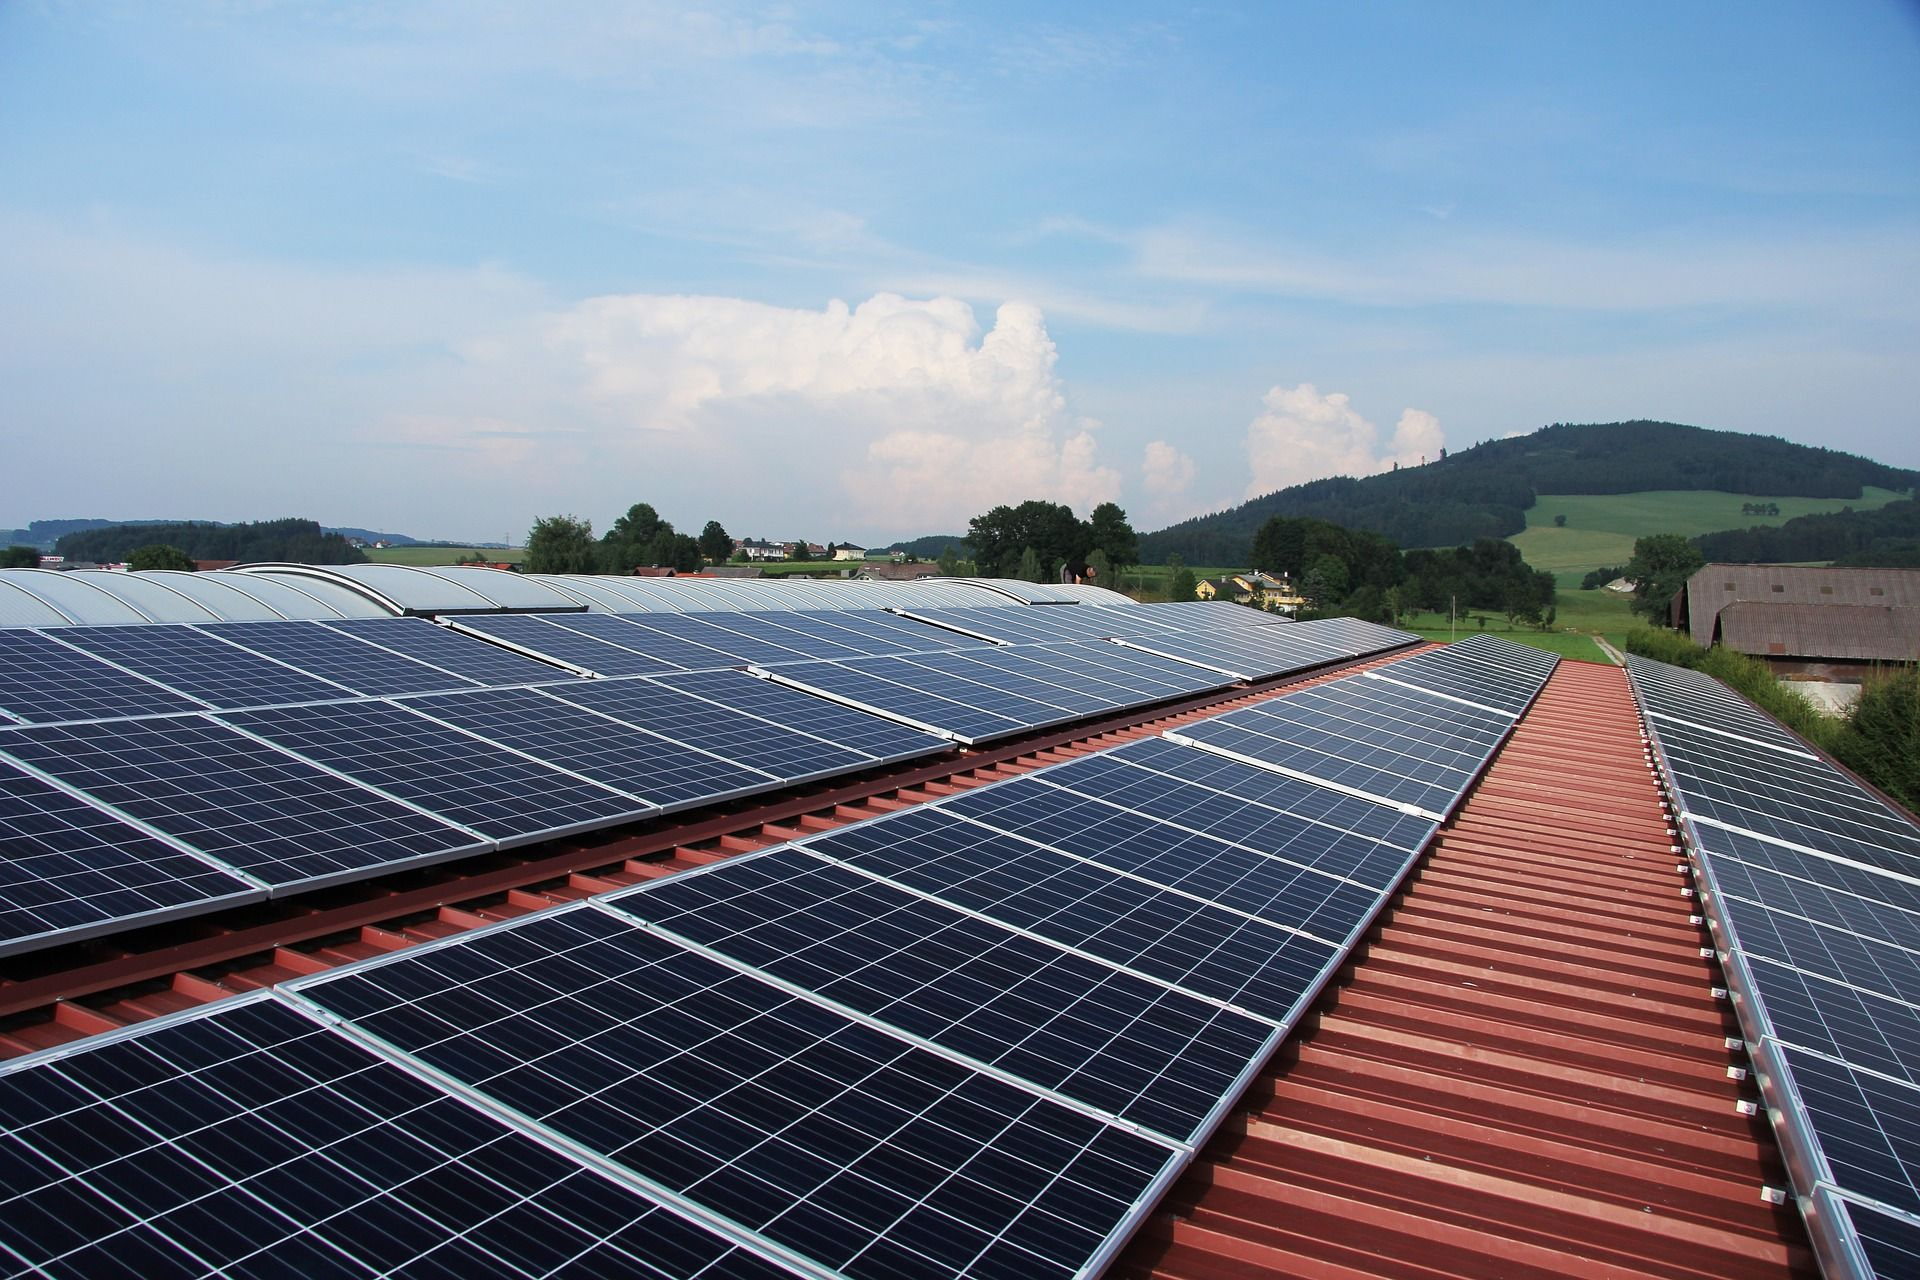 A Dublin Based Solar Company Has Entered A Joint Venture To Develop More Than 220m Of Solar Projec Solar Panels Advantages Of Solar Energy Solar Energy System